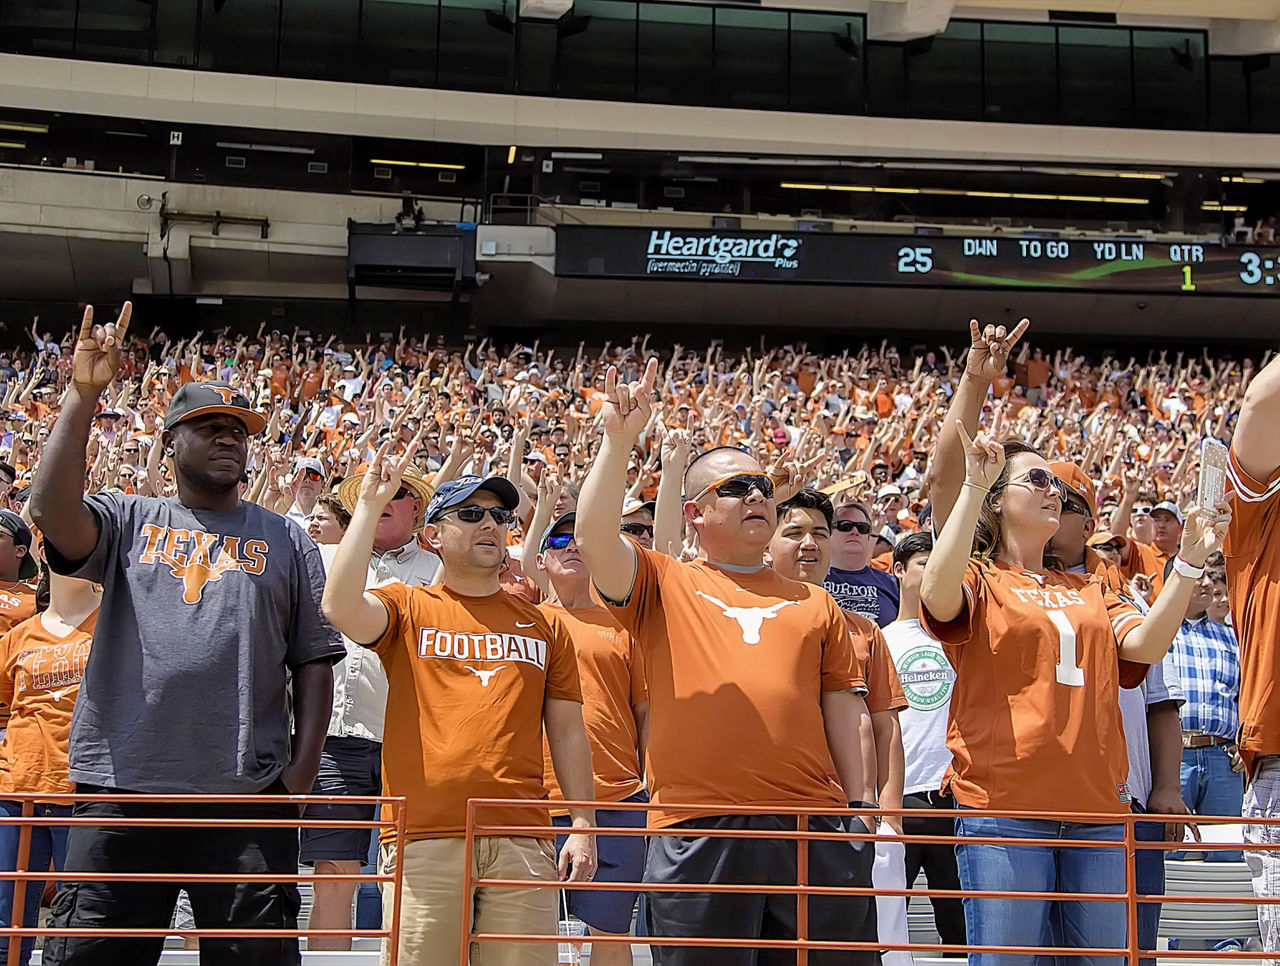 Cropped_2017-04-16t013721z_1332354775_nocid_rtrmadp_3_ncaa-football-texas-spring-game